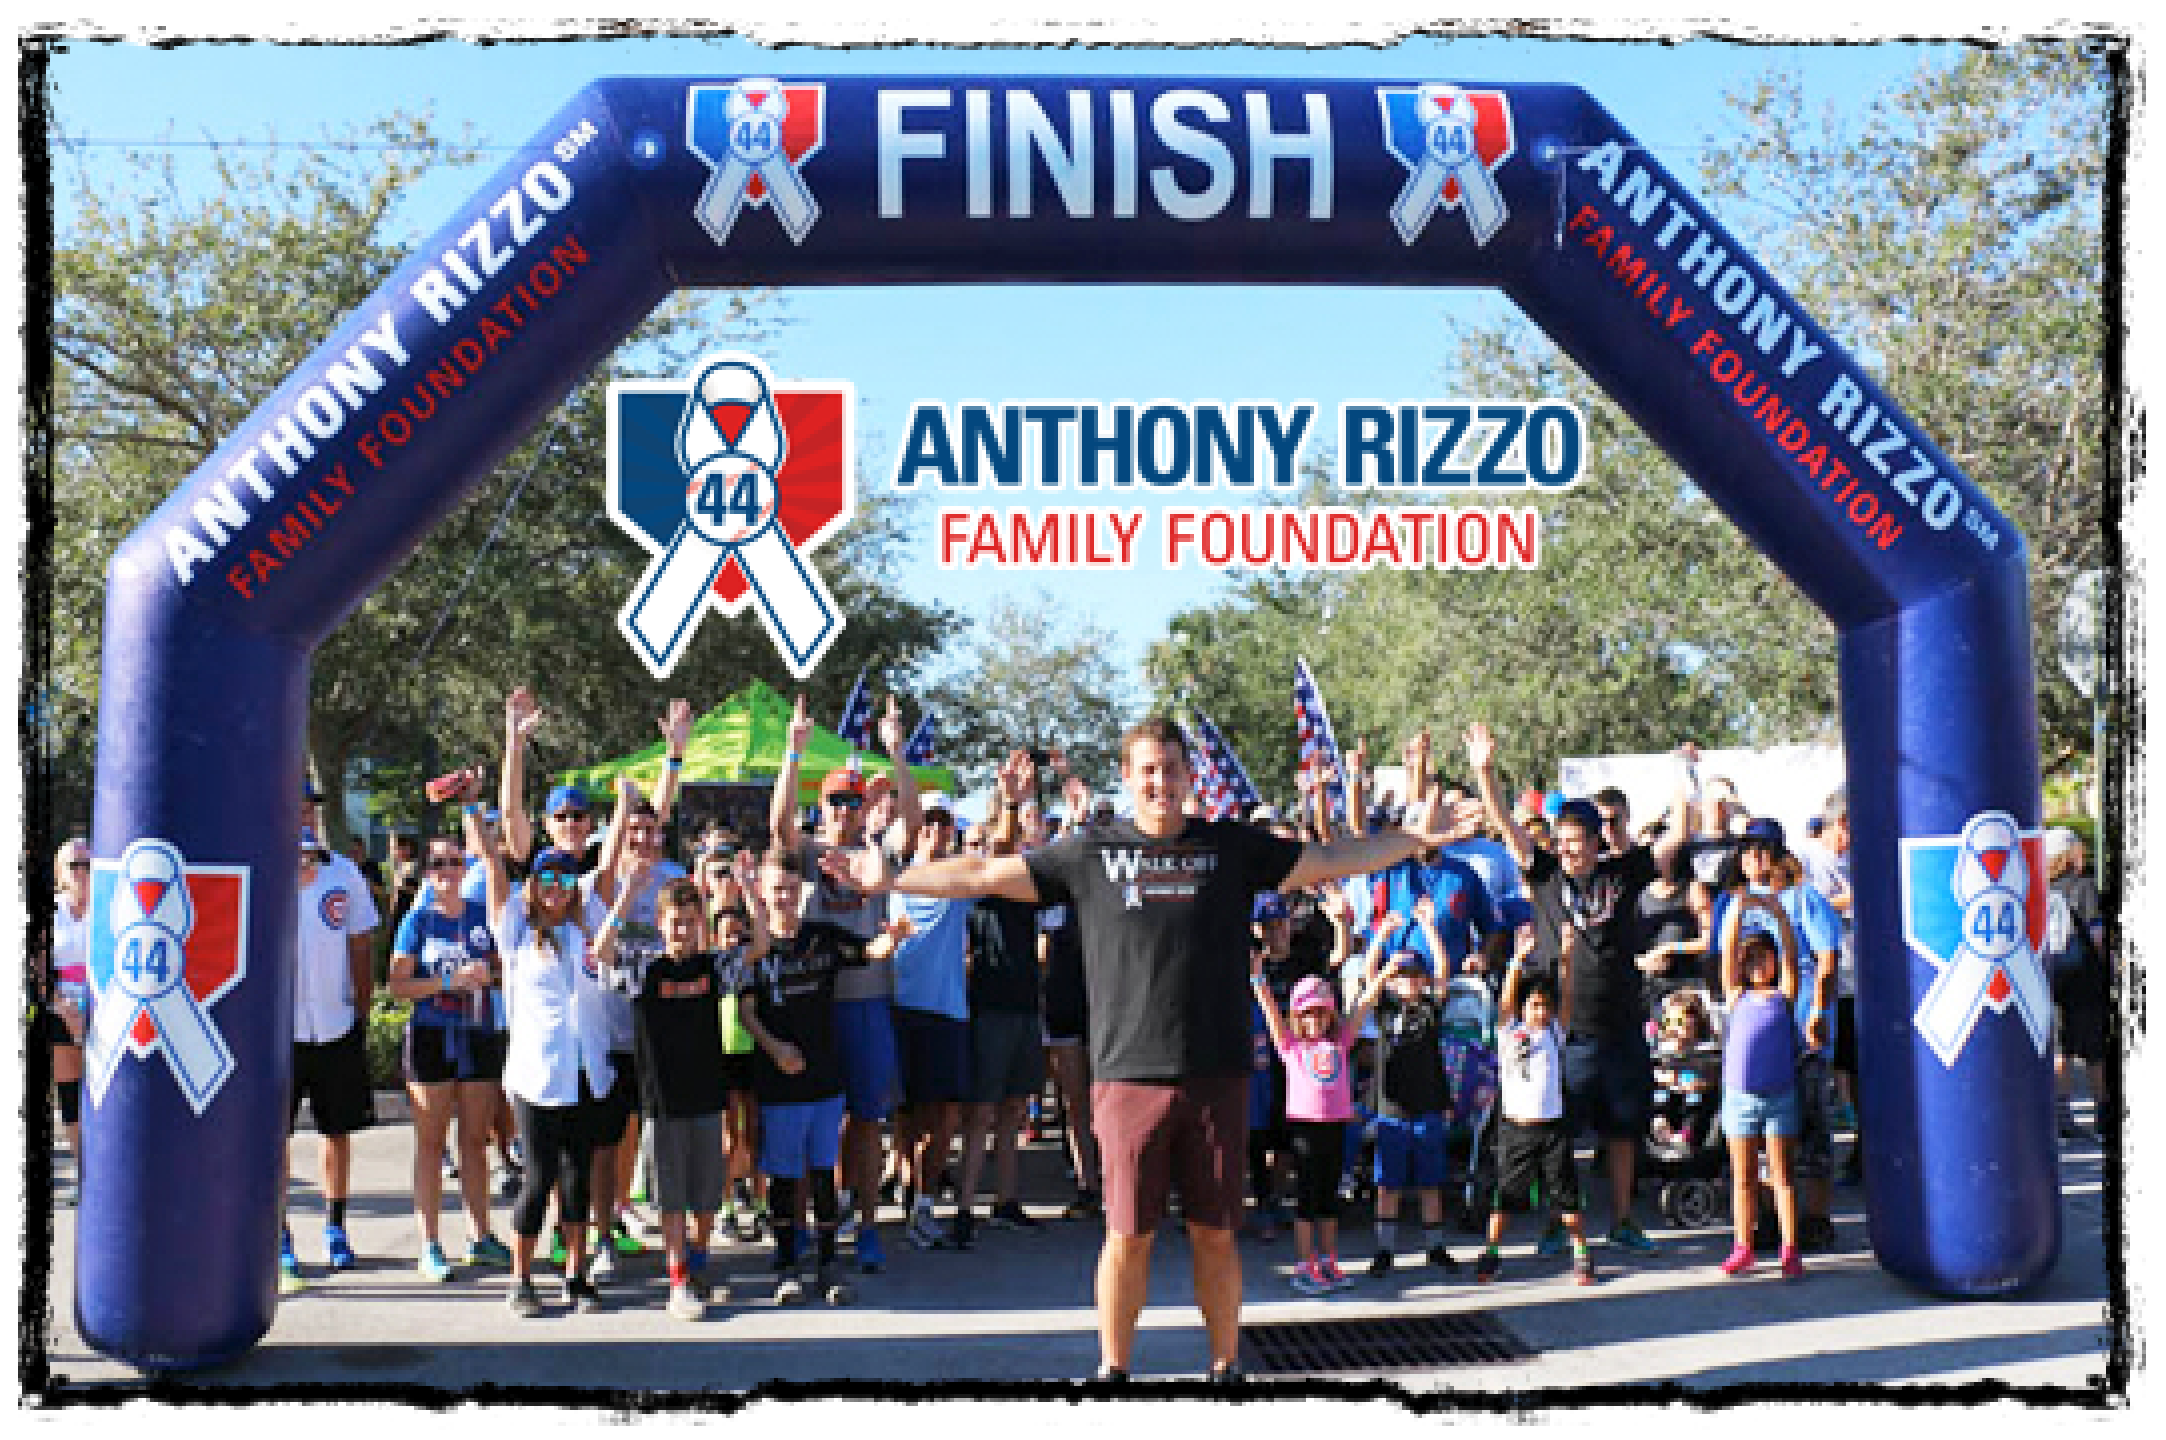 Anthony-Rizzo-Family-Foundation